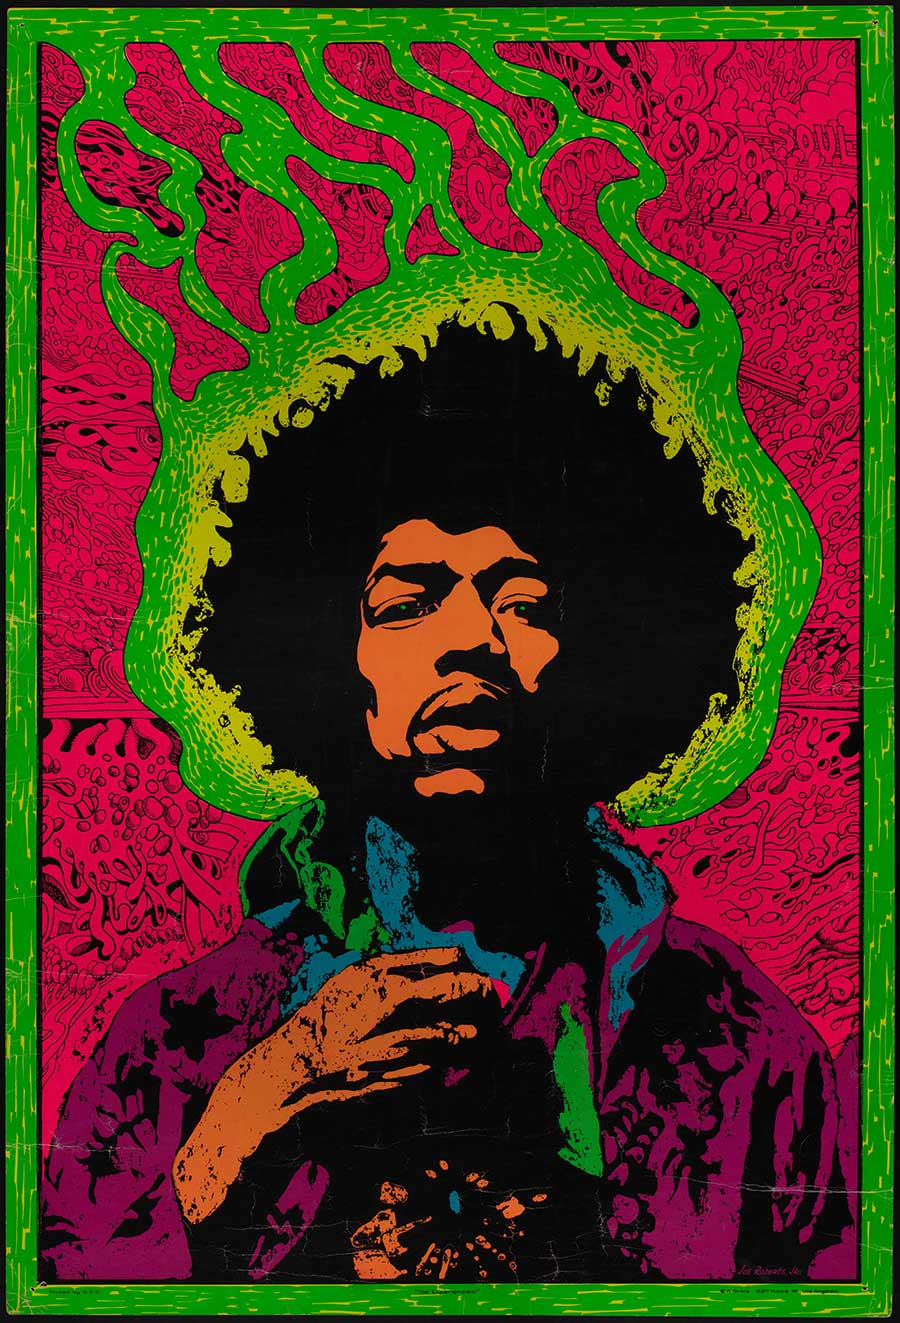 A poster of Jimi Hendrix.